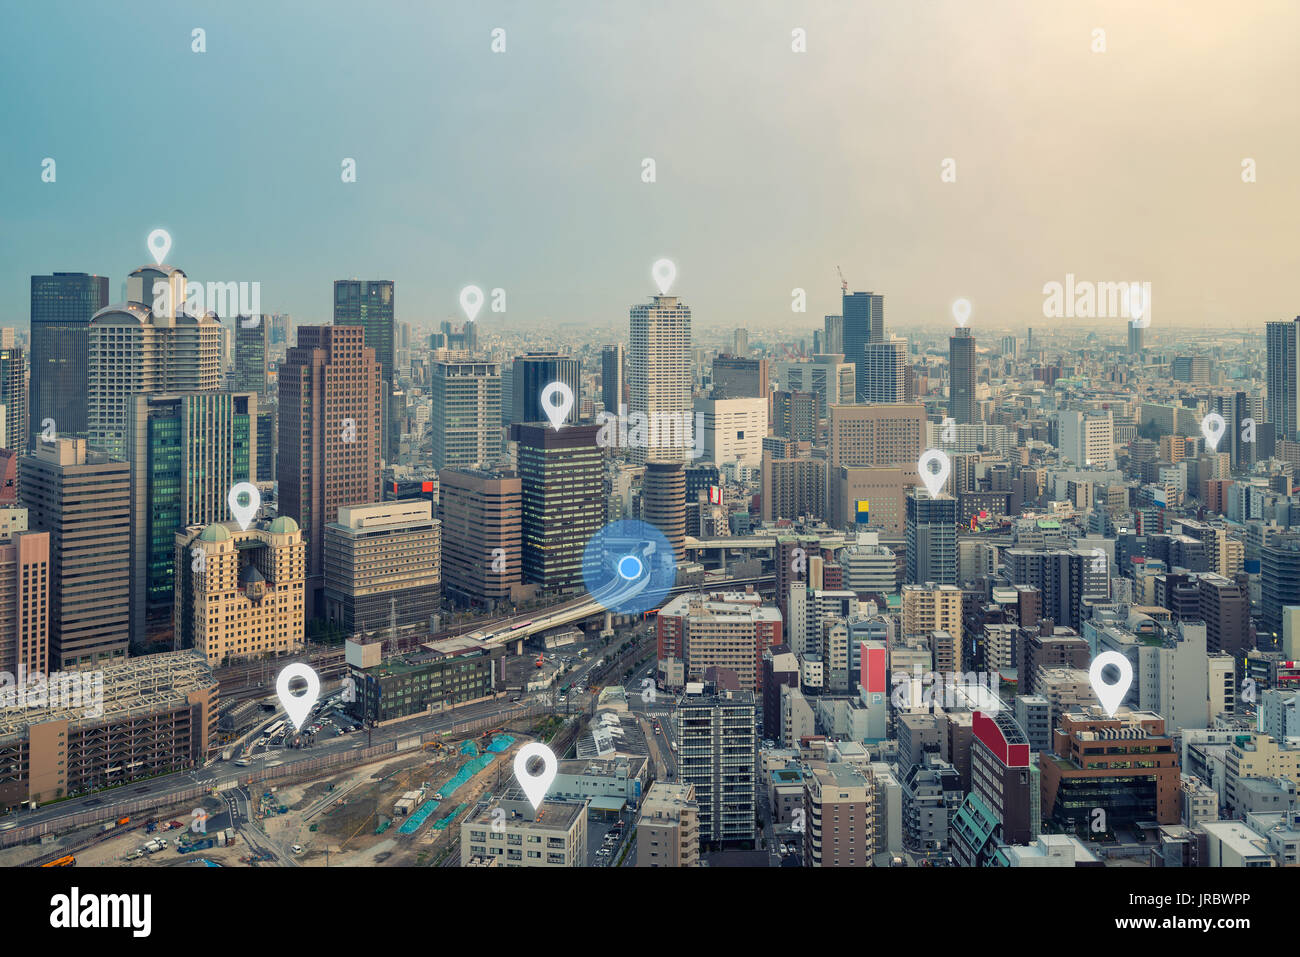 Searching location on map and pin above Osaka city and network connection, internet of things, satellite navigation system concept - Stock Image